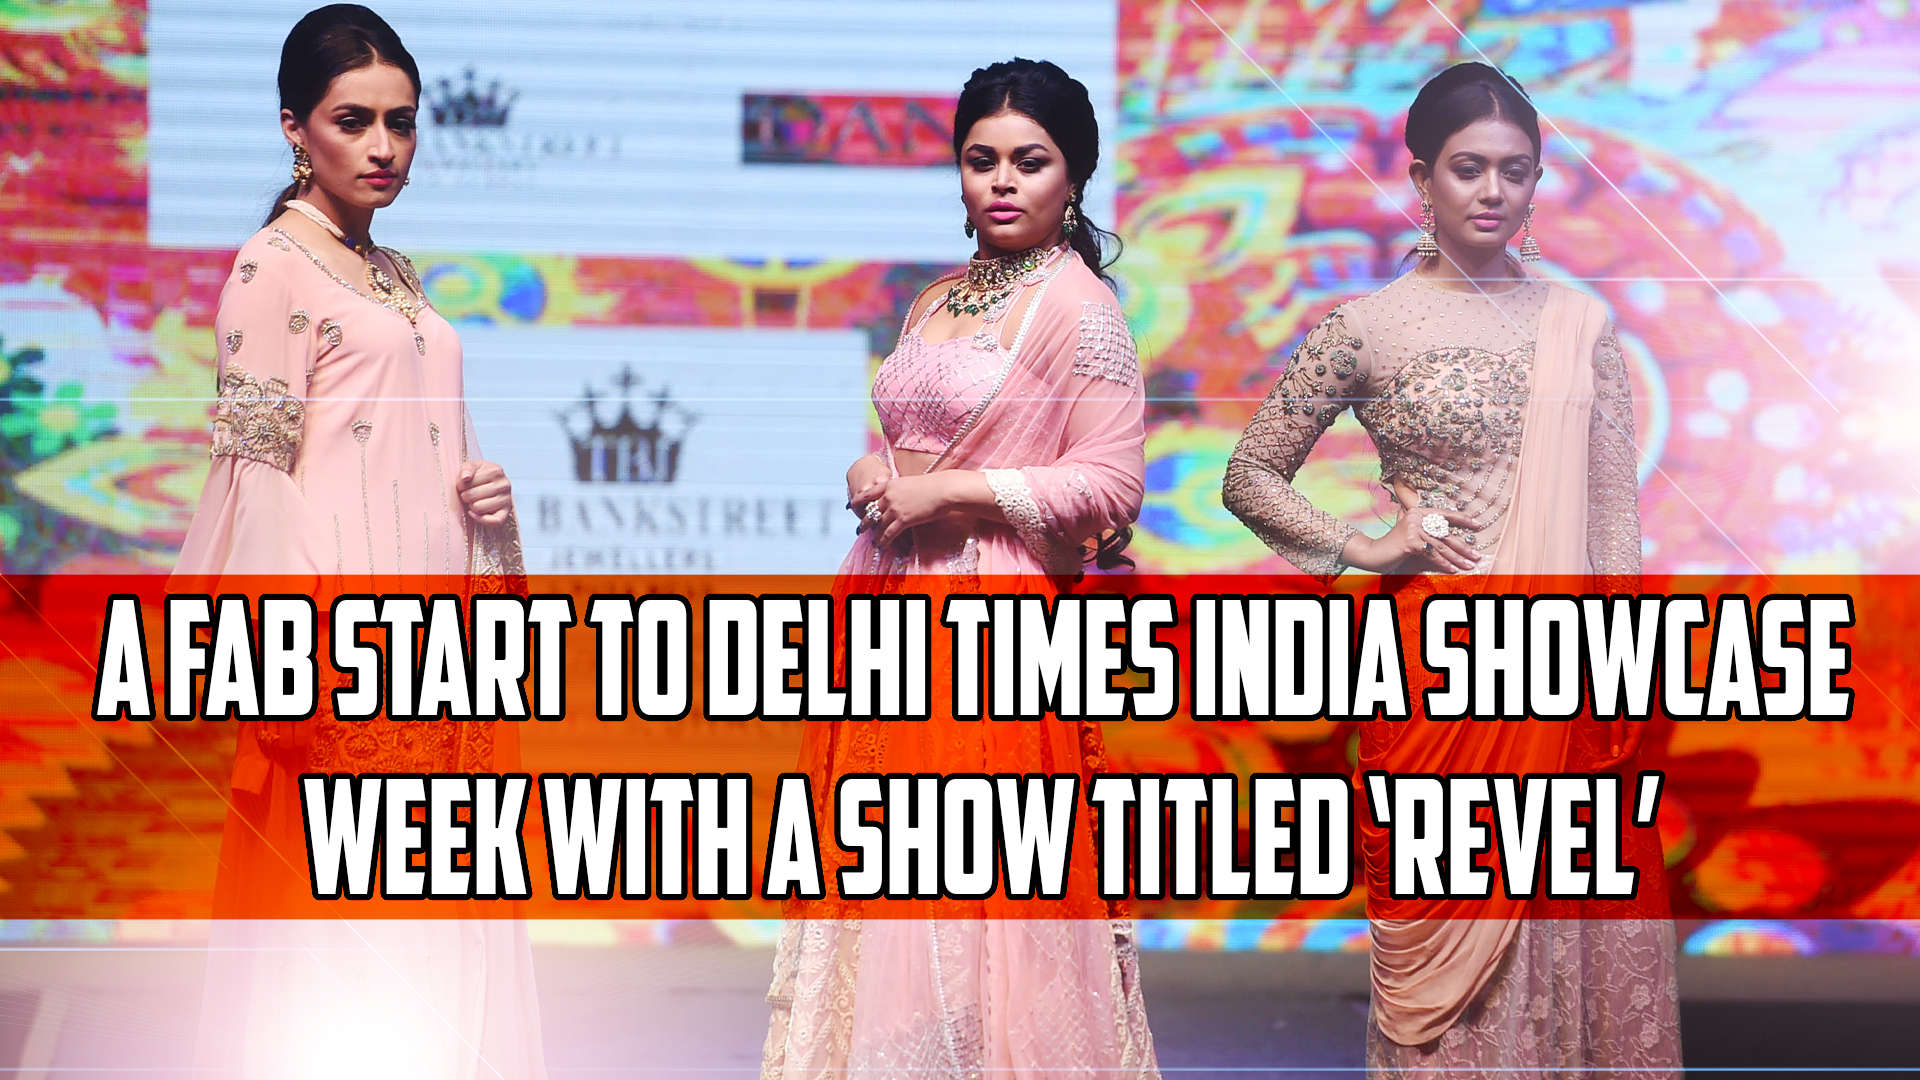 A fab start to Delhi Times India Showcase Week with a show titled 'Revel'